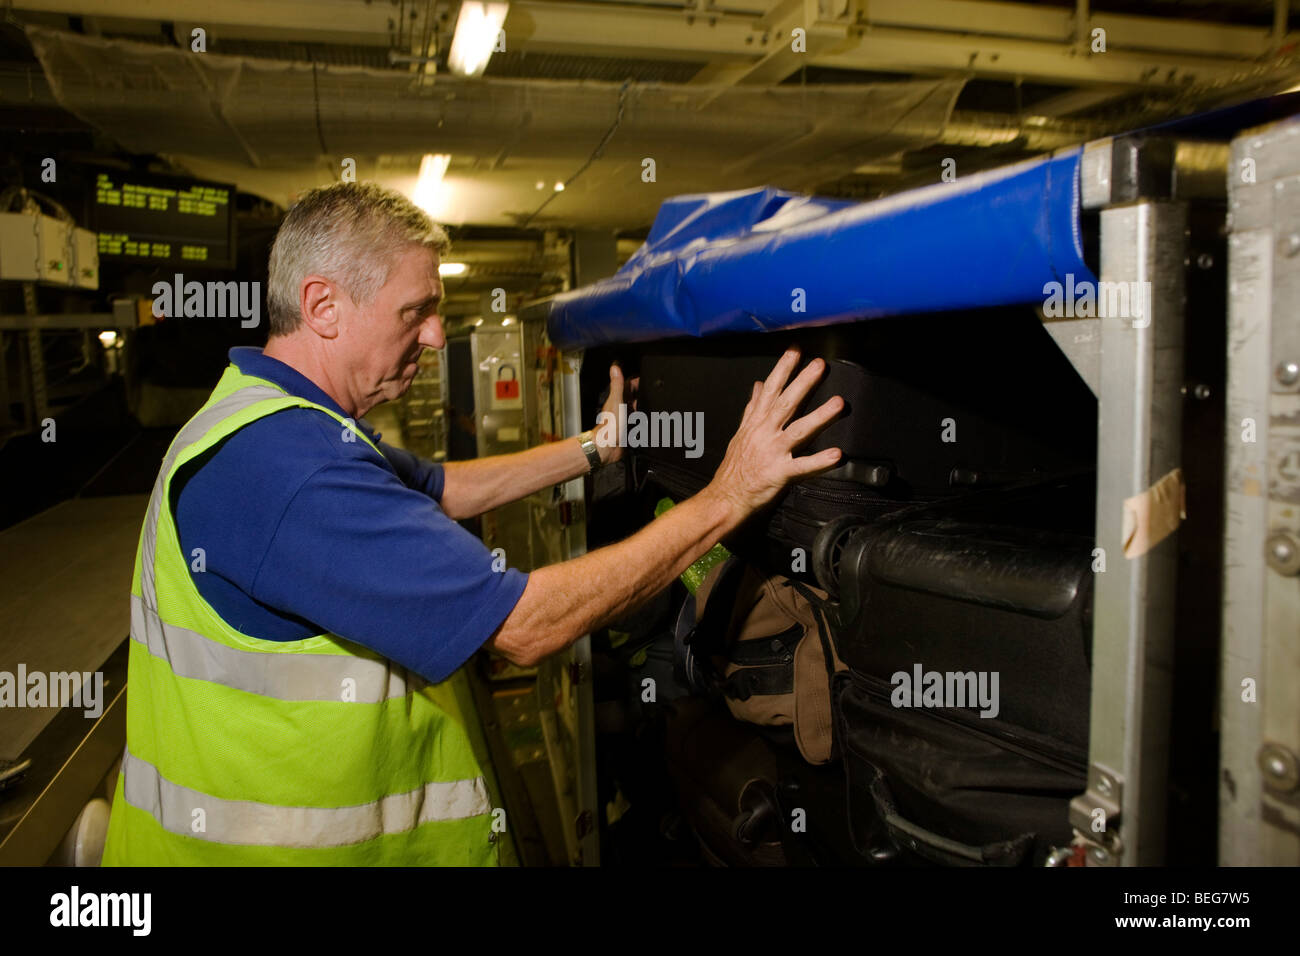 A British Airways baggage loads passengers' possessions into an airline container at Heathrow terminal 5. - Stock Image